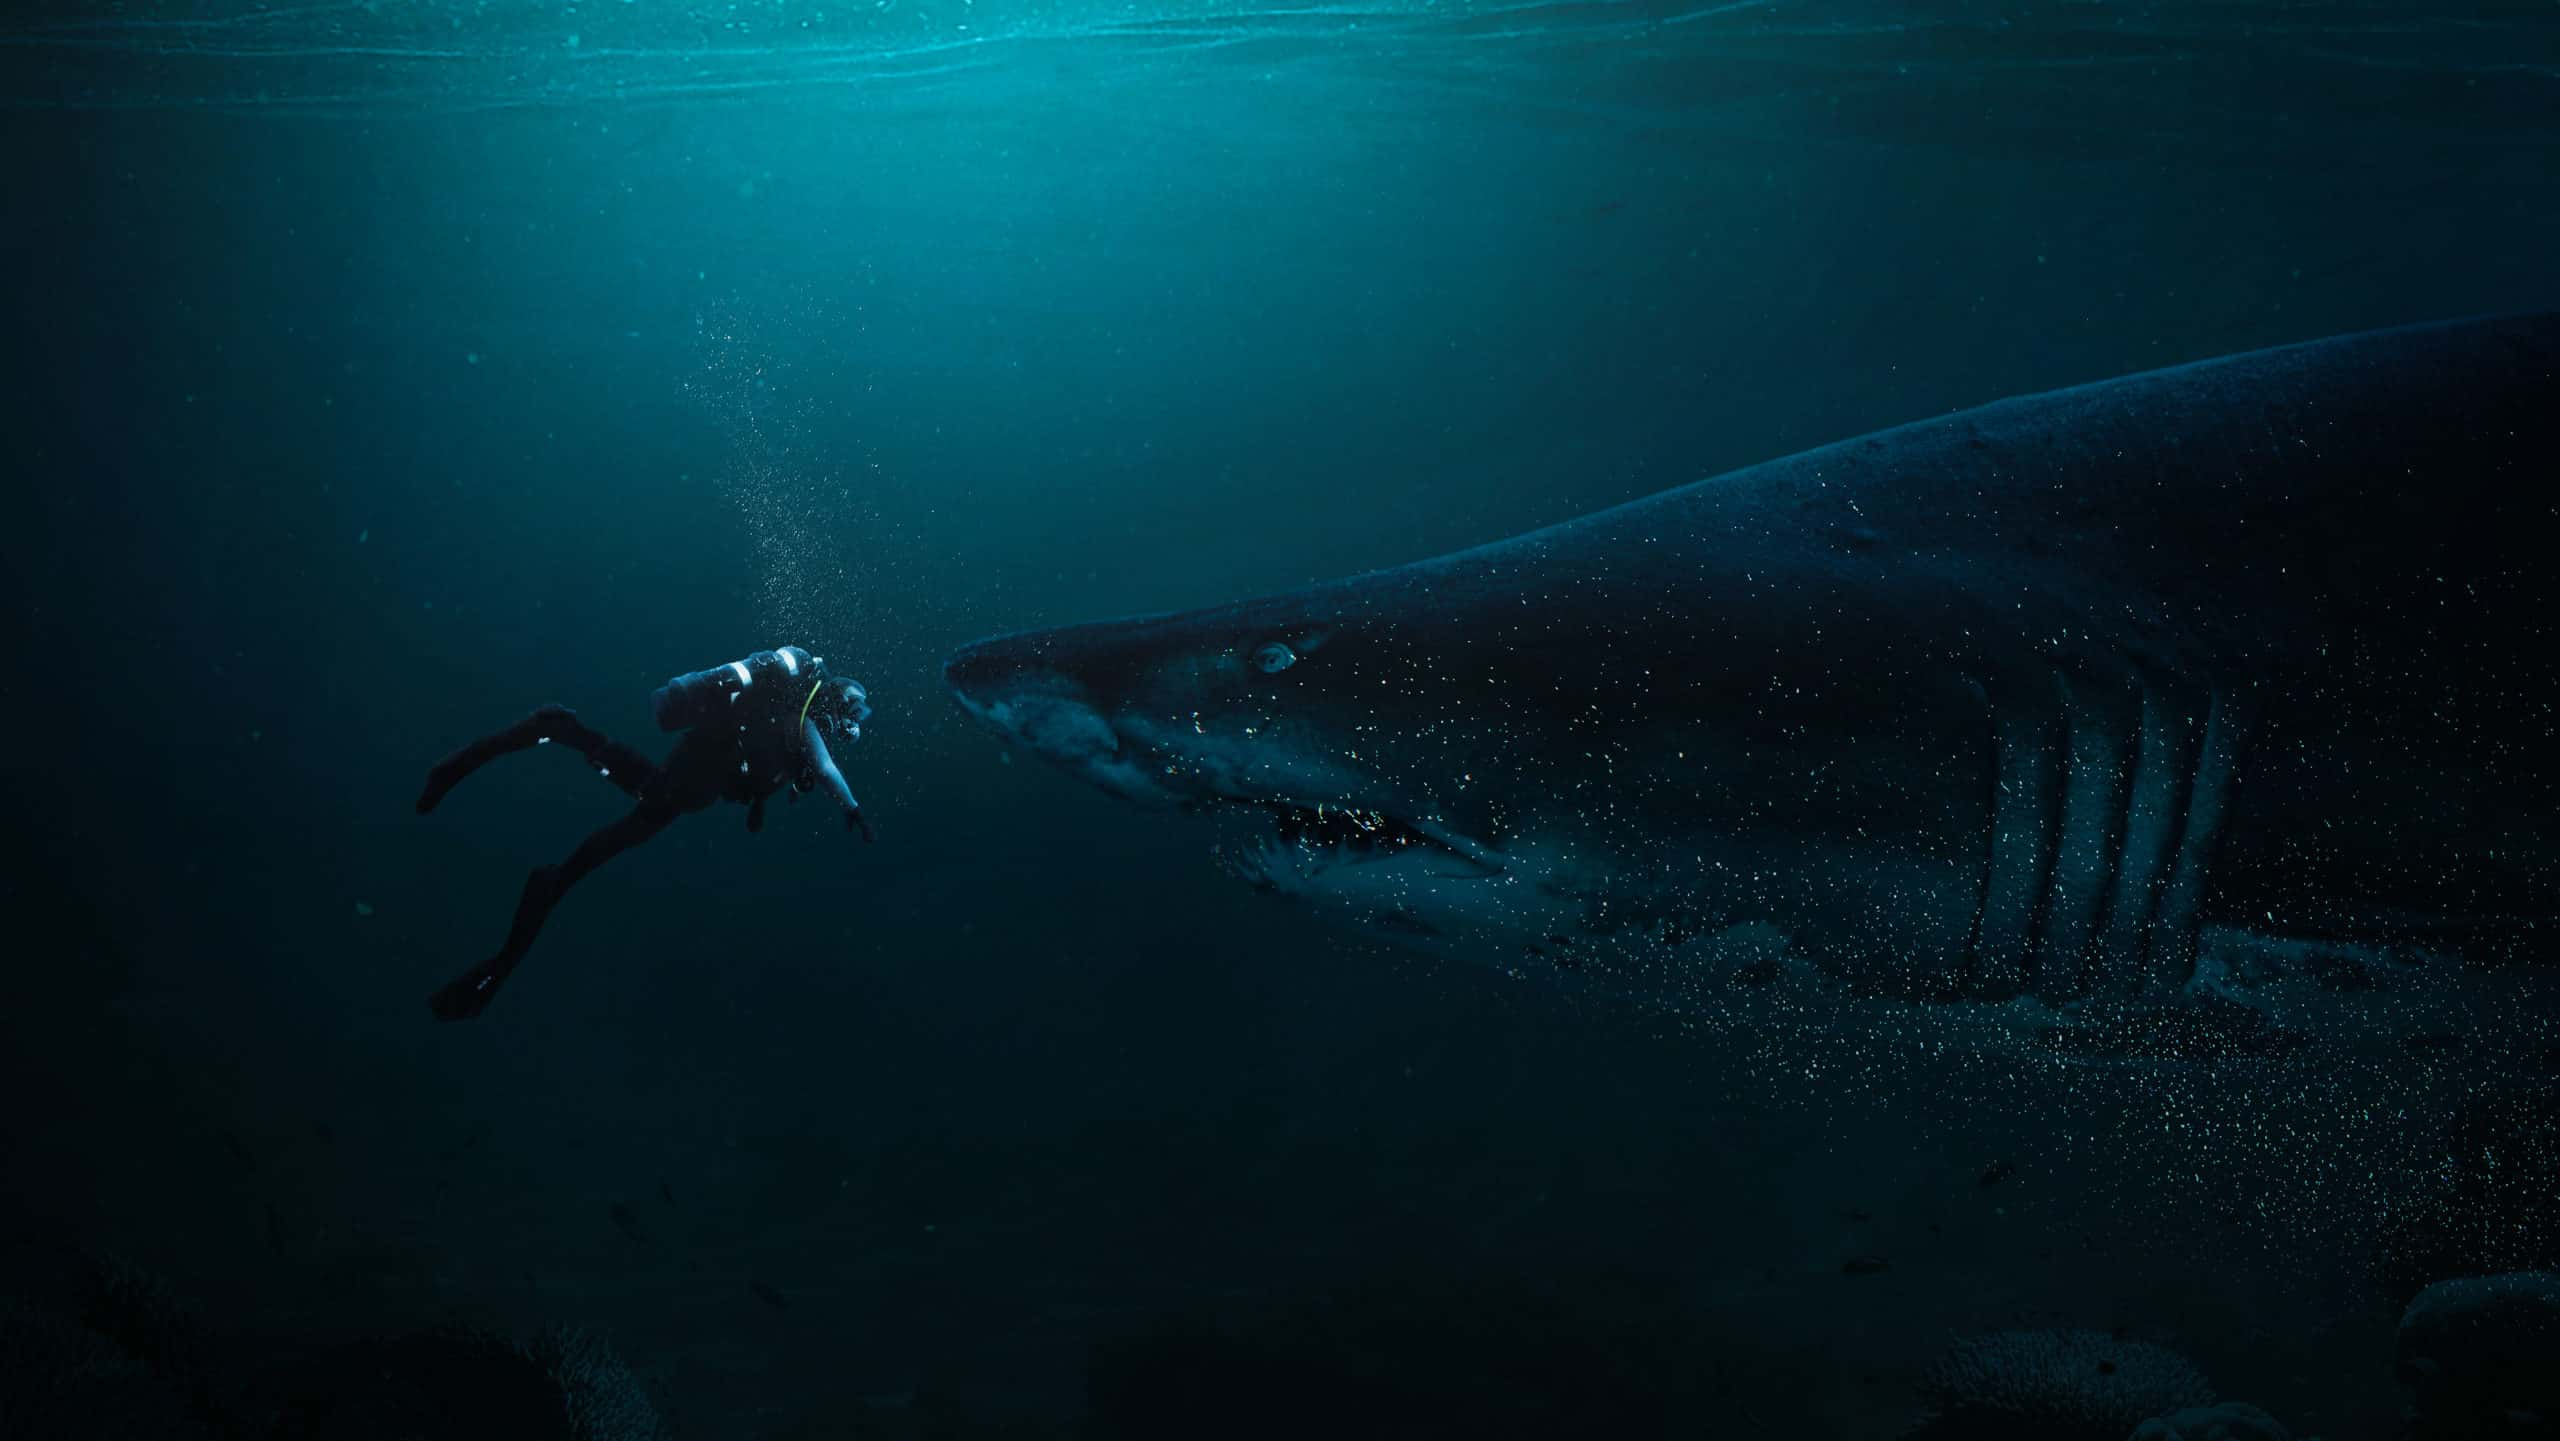 Create a Photomanipulation of a Shark and a Diver